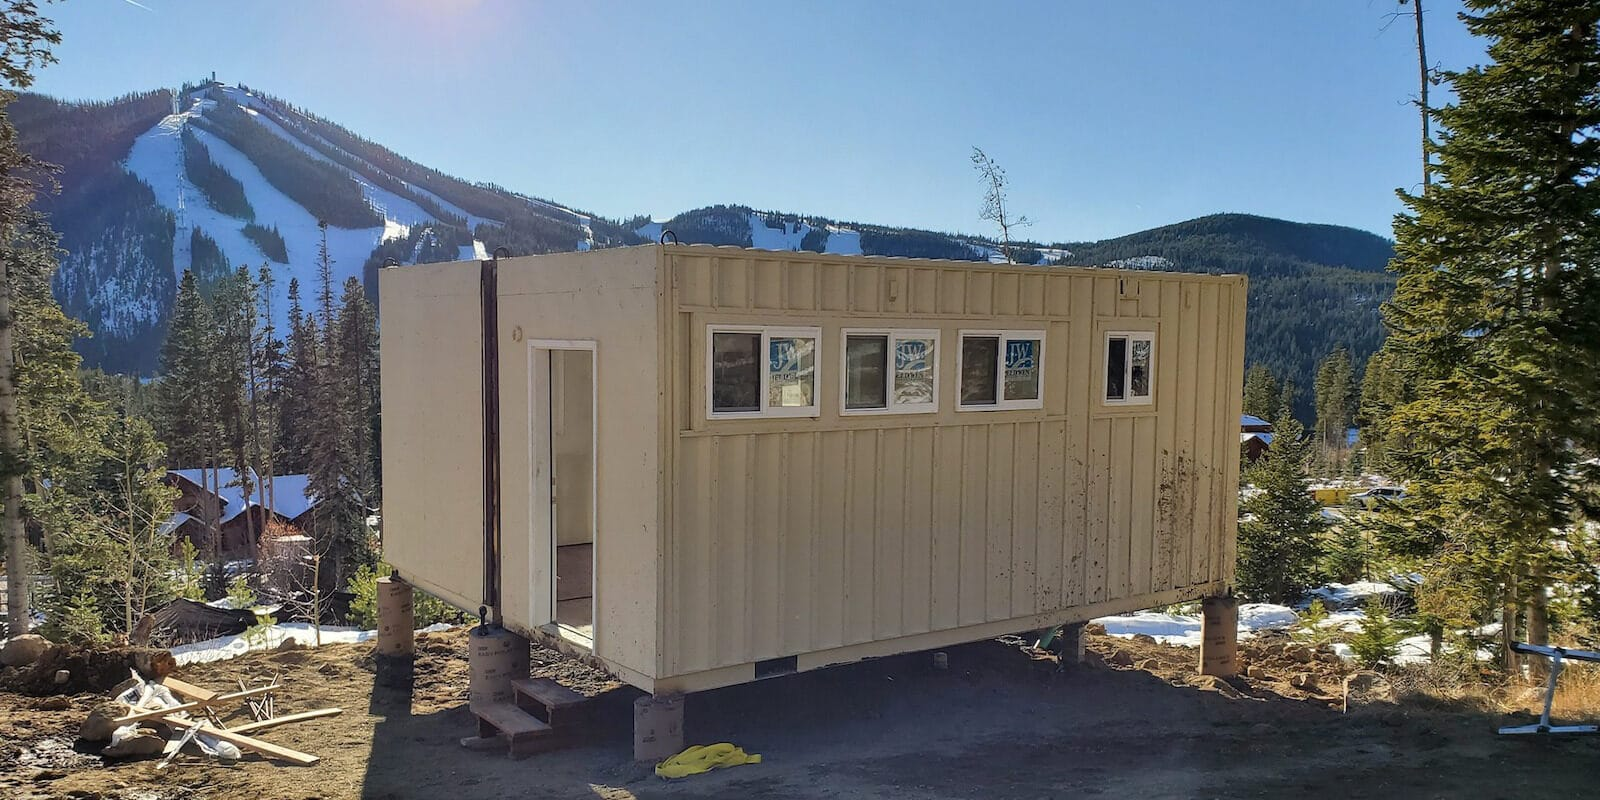 Image of a Colorado Container Home being built in the mountains